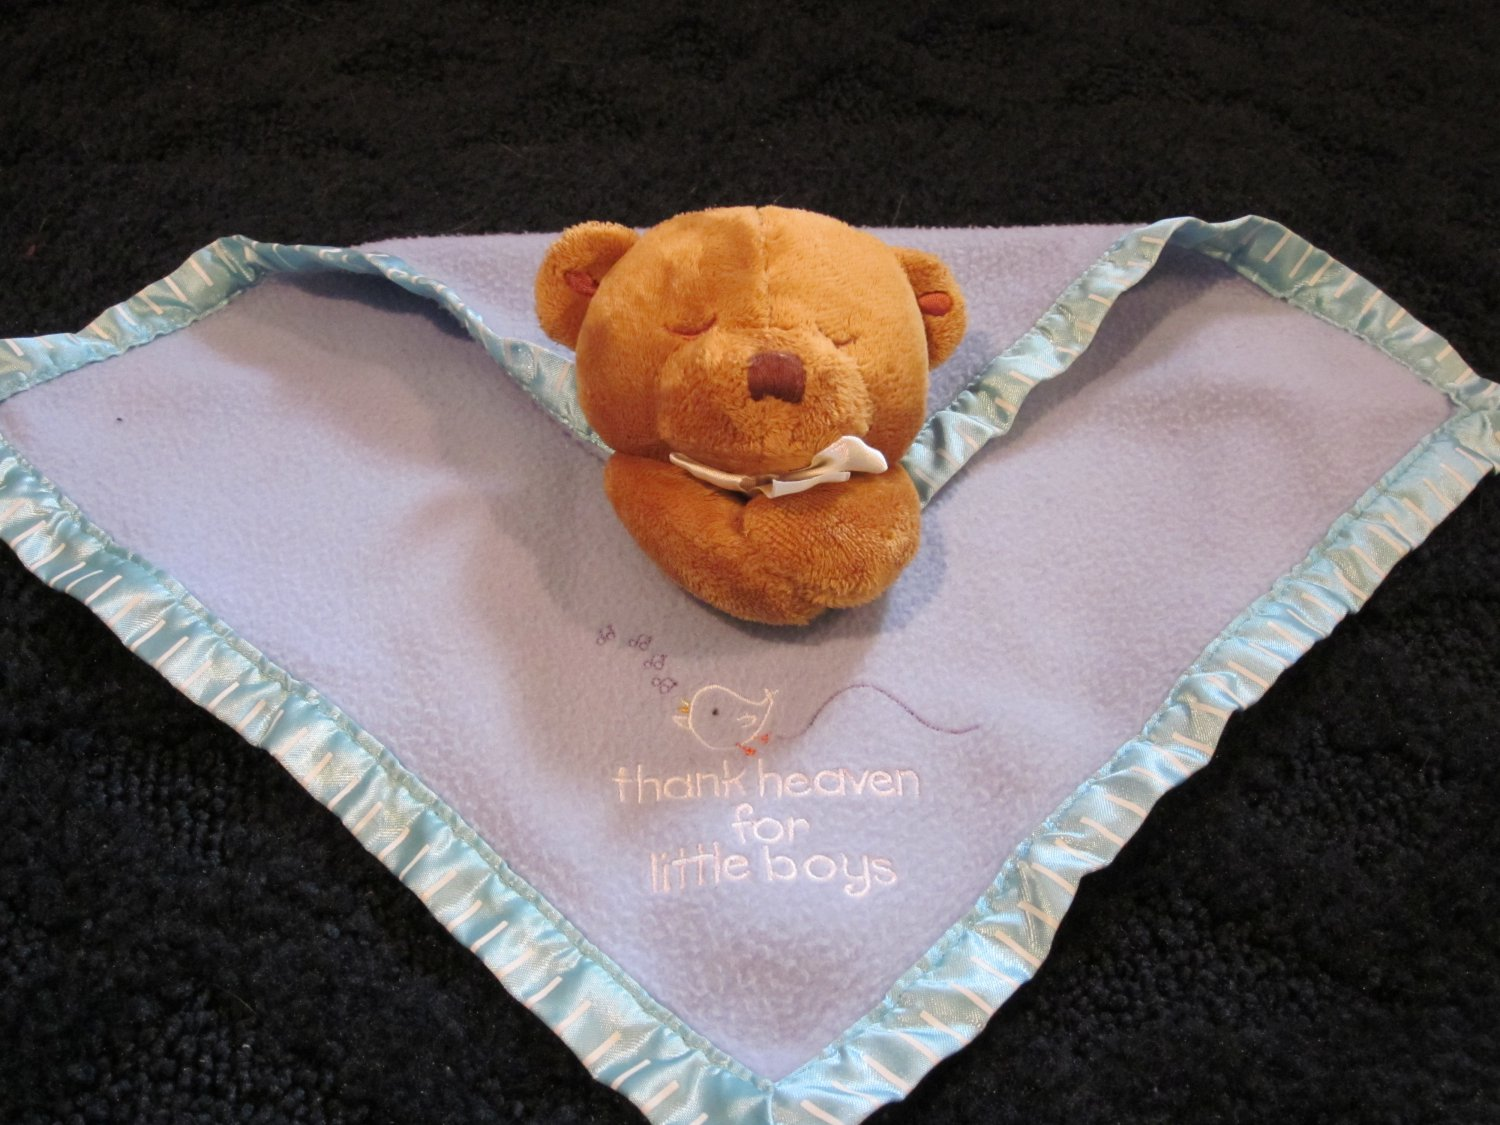 Kids II Teddy Bear Security Blanket Prays and Thank Heaven for little Boys